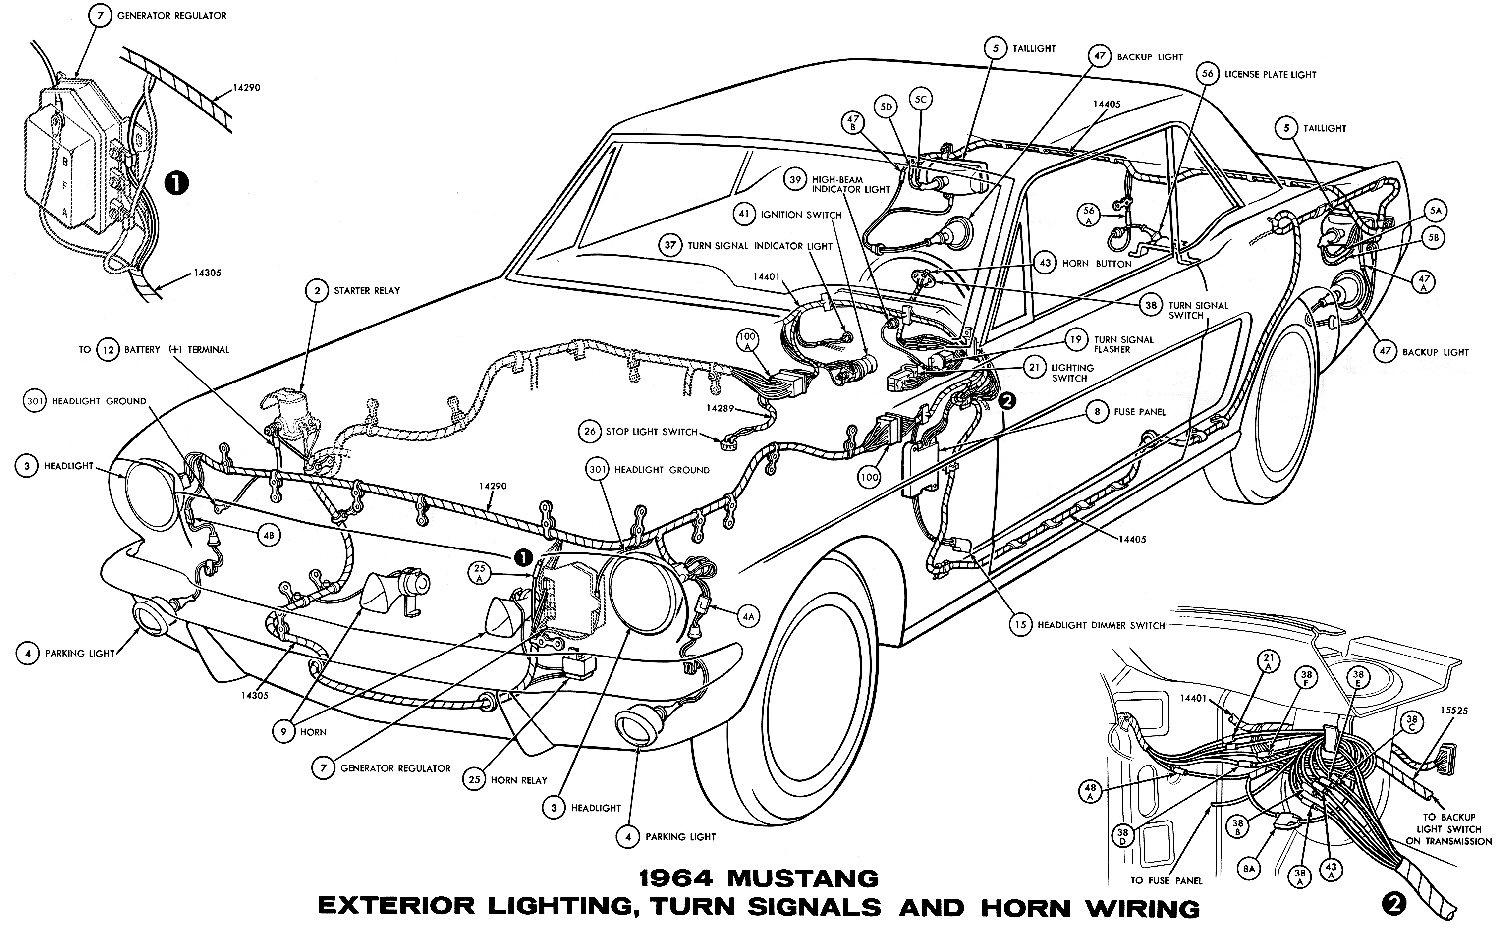 Exterior Light Turn Signals And Horns Wiring Diagrams Of 1966 1985 Mustang Signal Diagram 1964 Average Joe Restoration Rh Averagejoerestoration Com